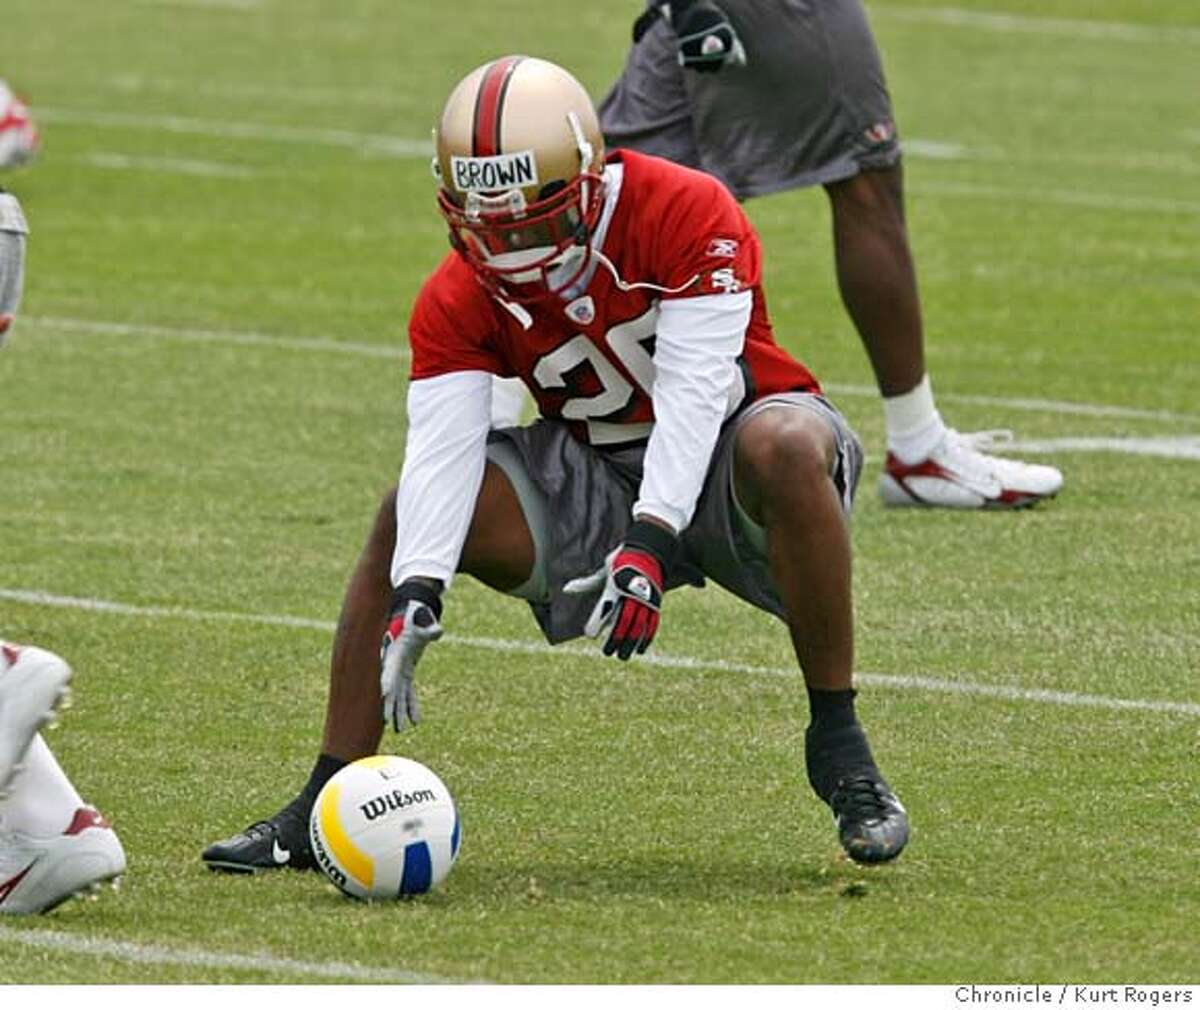 Tarell Brown works on drills during pratice. The San Francisco 49ERS kicked off their Organized Training Activities at their Santa Clara training camp this was the second day. TUESDAY, JUNE 5, 2007 KURT ROGERS SANTA CLARA SFC THE CHRONICLE 49ERS_0249_kr.jpg MANDATORY CREDIT FOR PHOTOG AND SF CHRONICLE / NO SALES-MAGS OUT